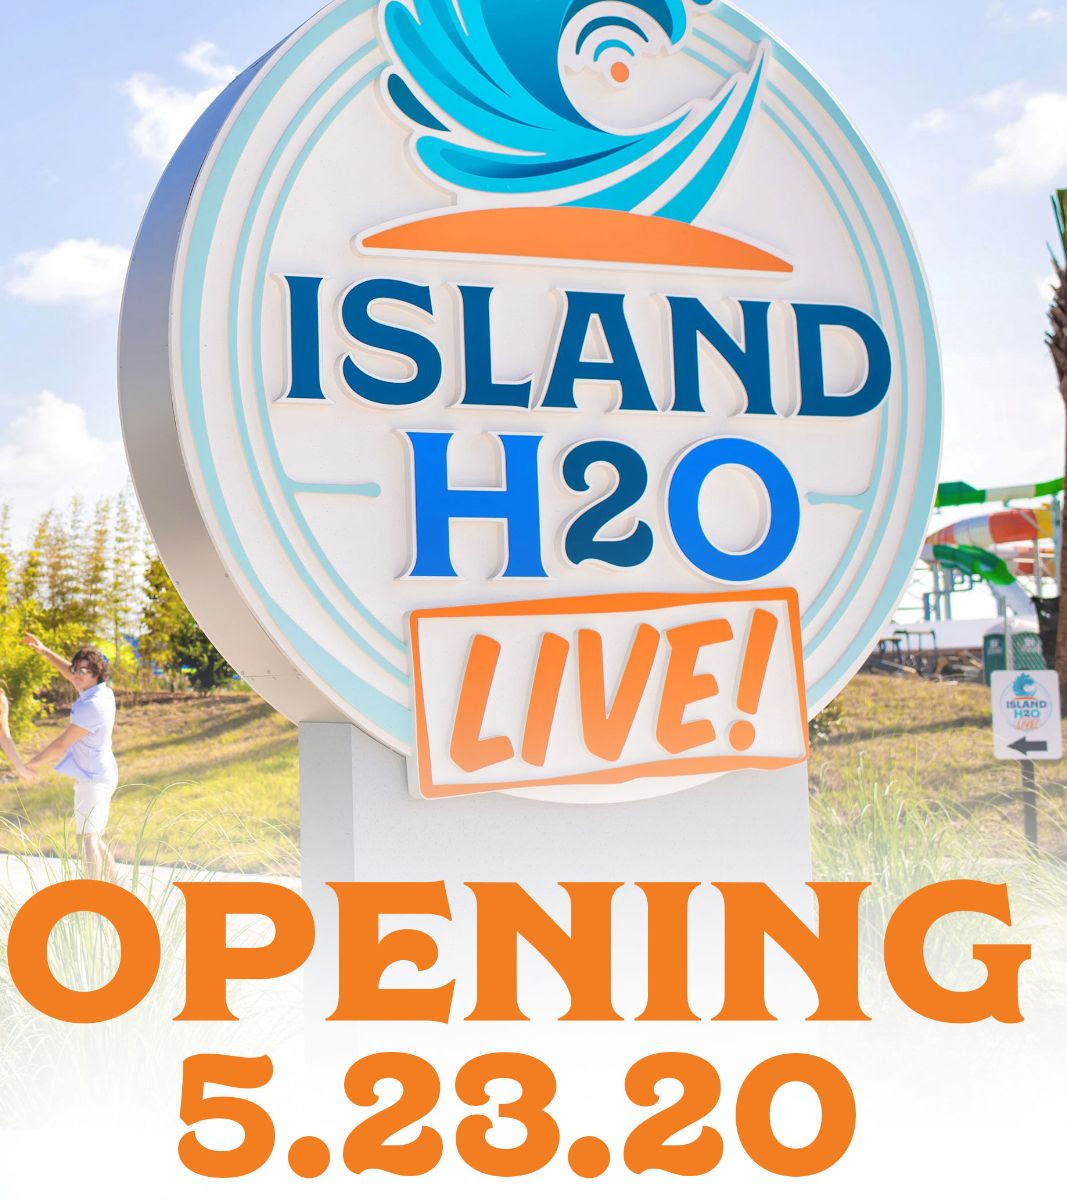 Island H20 Live reopening On the GO in the Parks